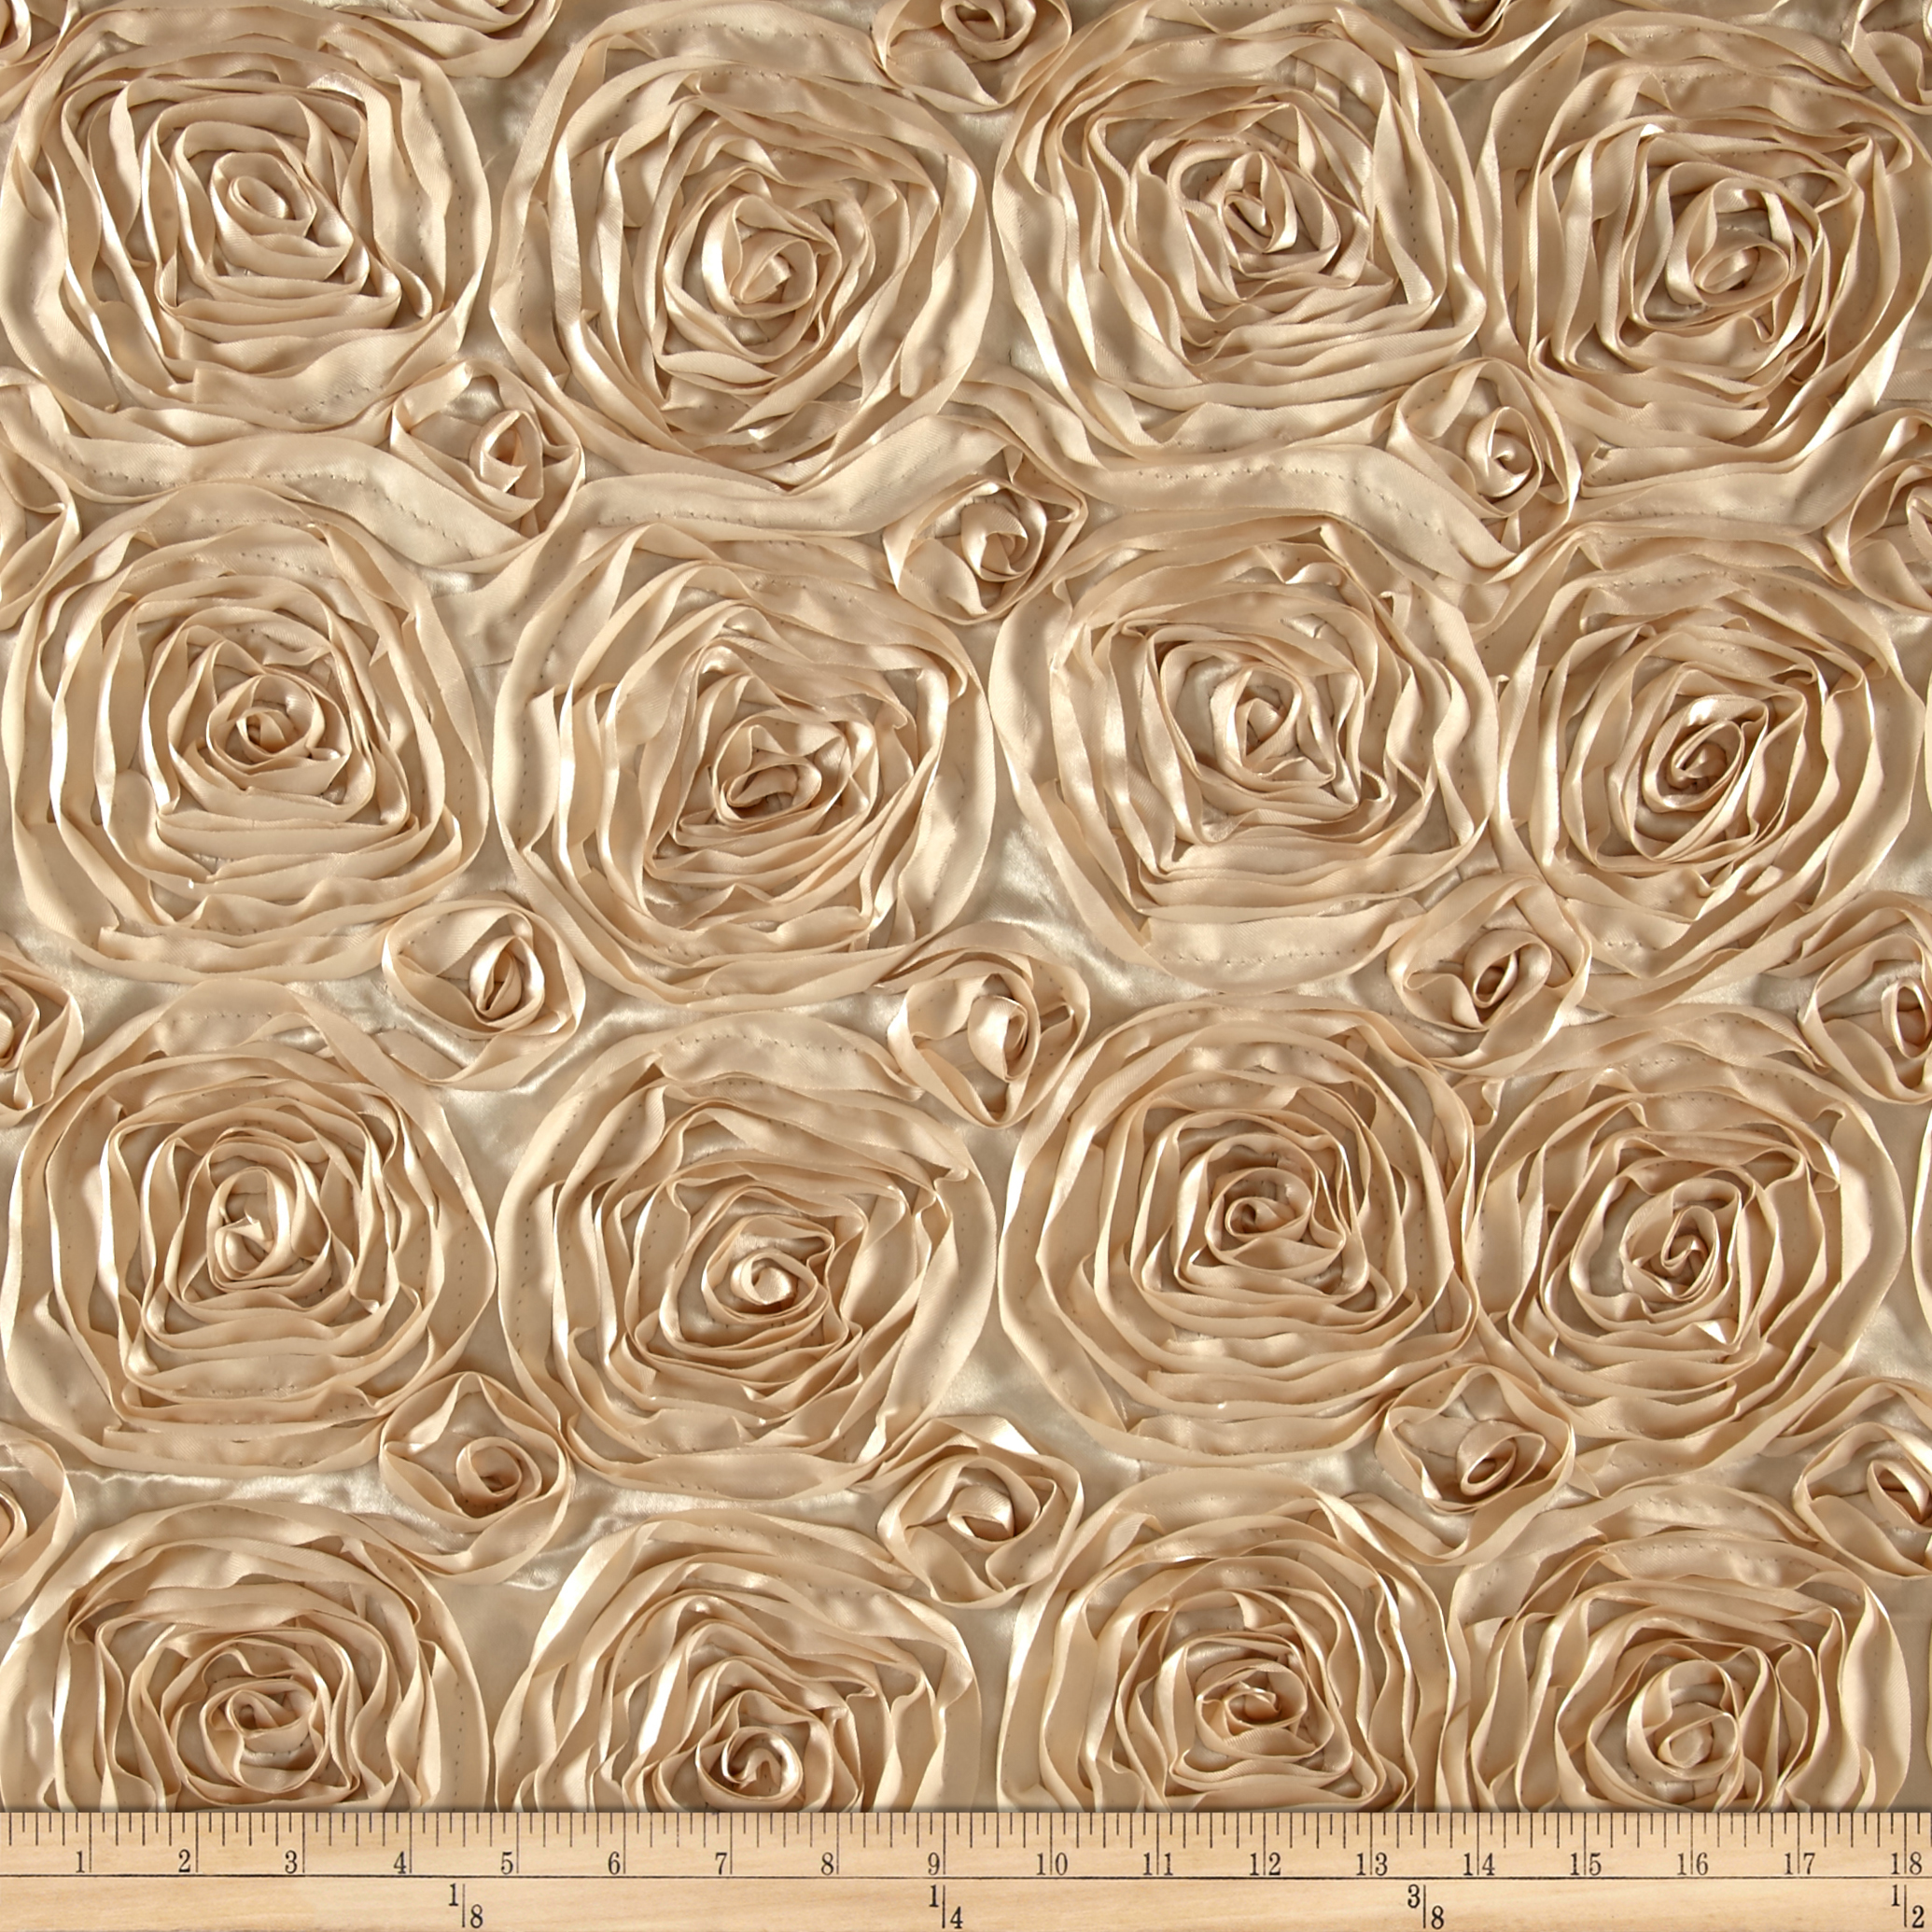 Wedding Rosette Satin Champagne Fabric by Ben in USA